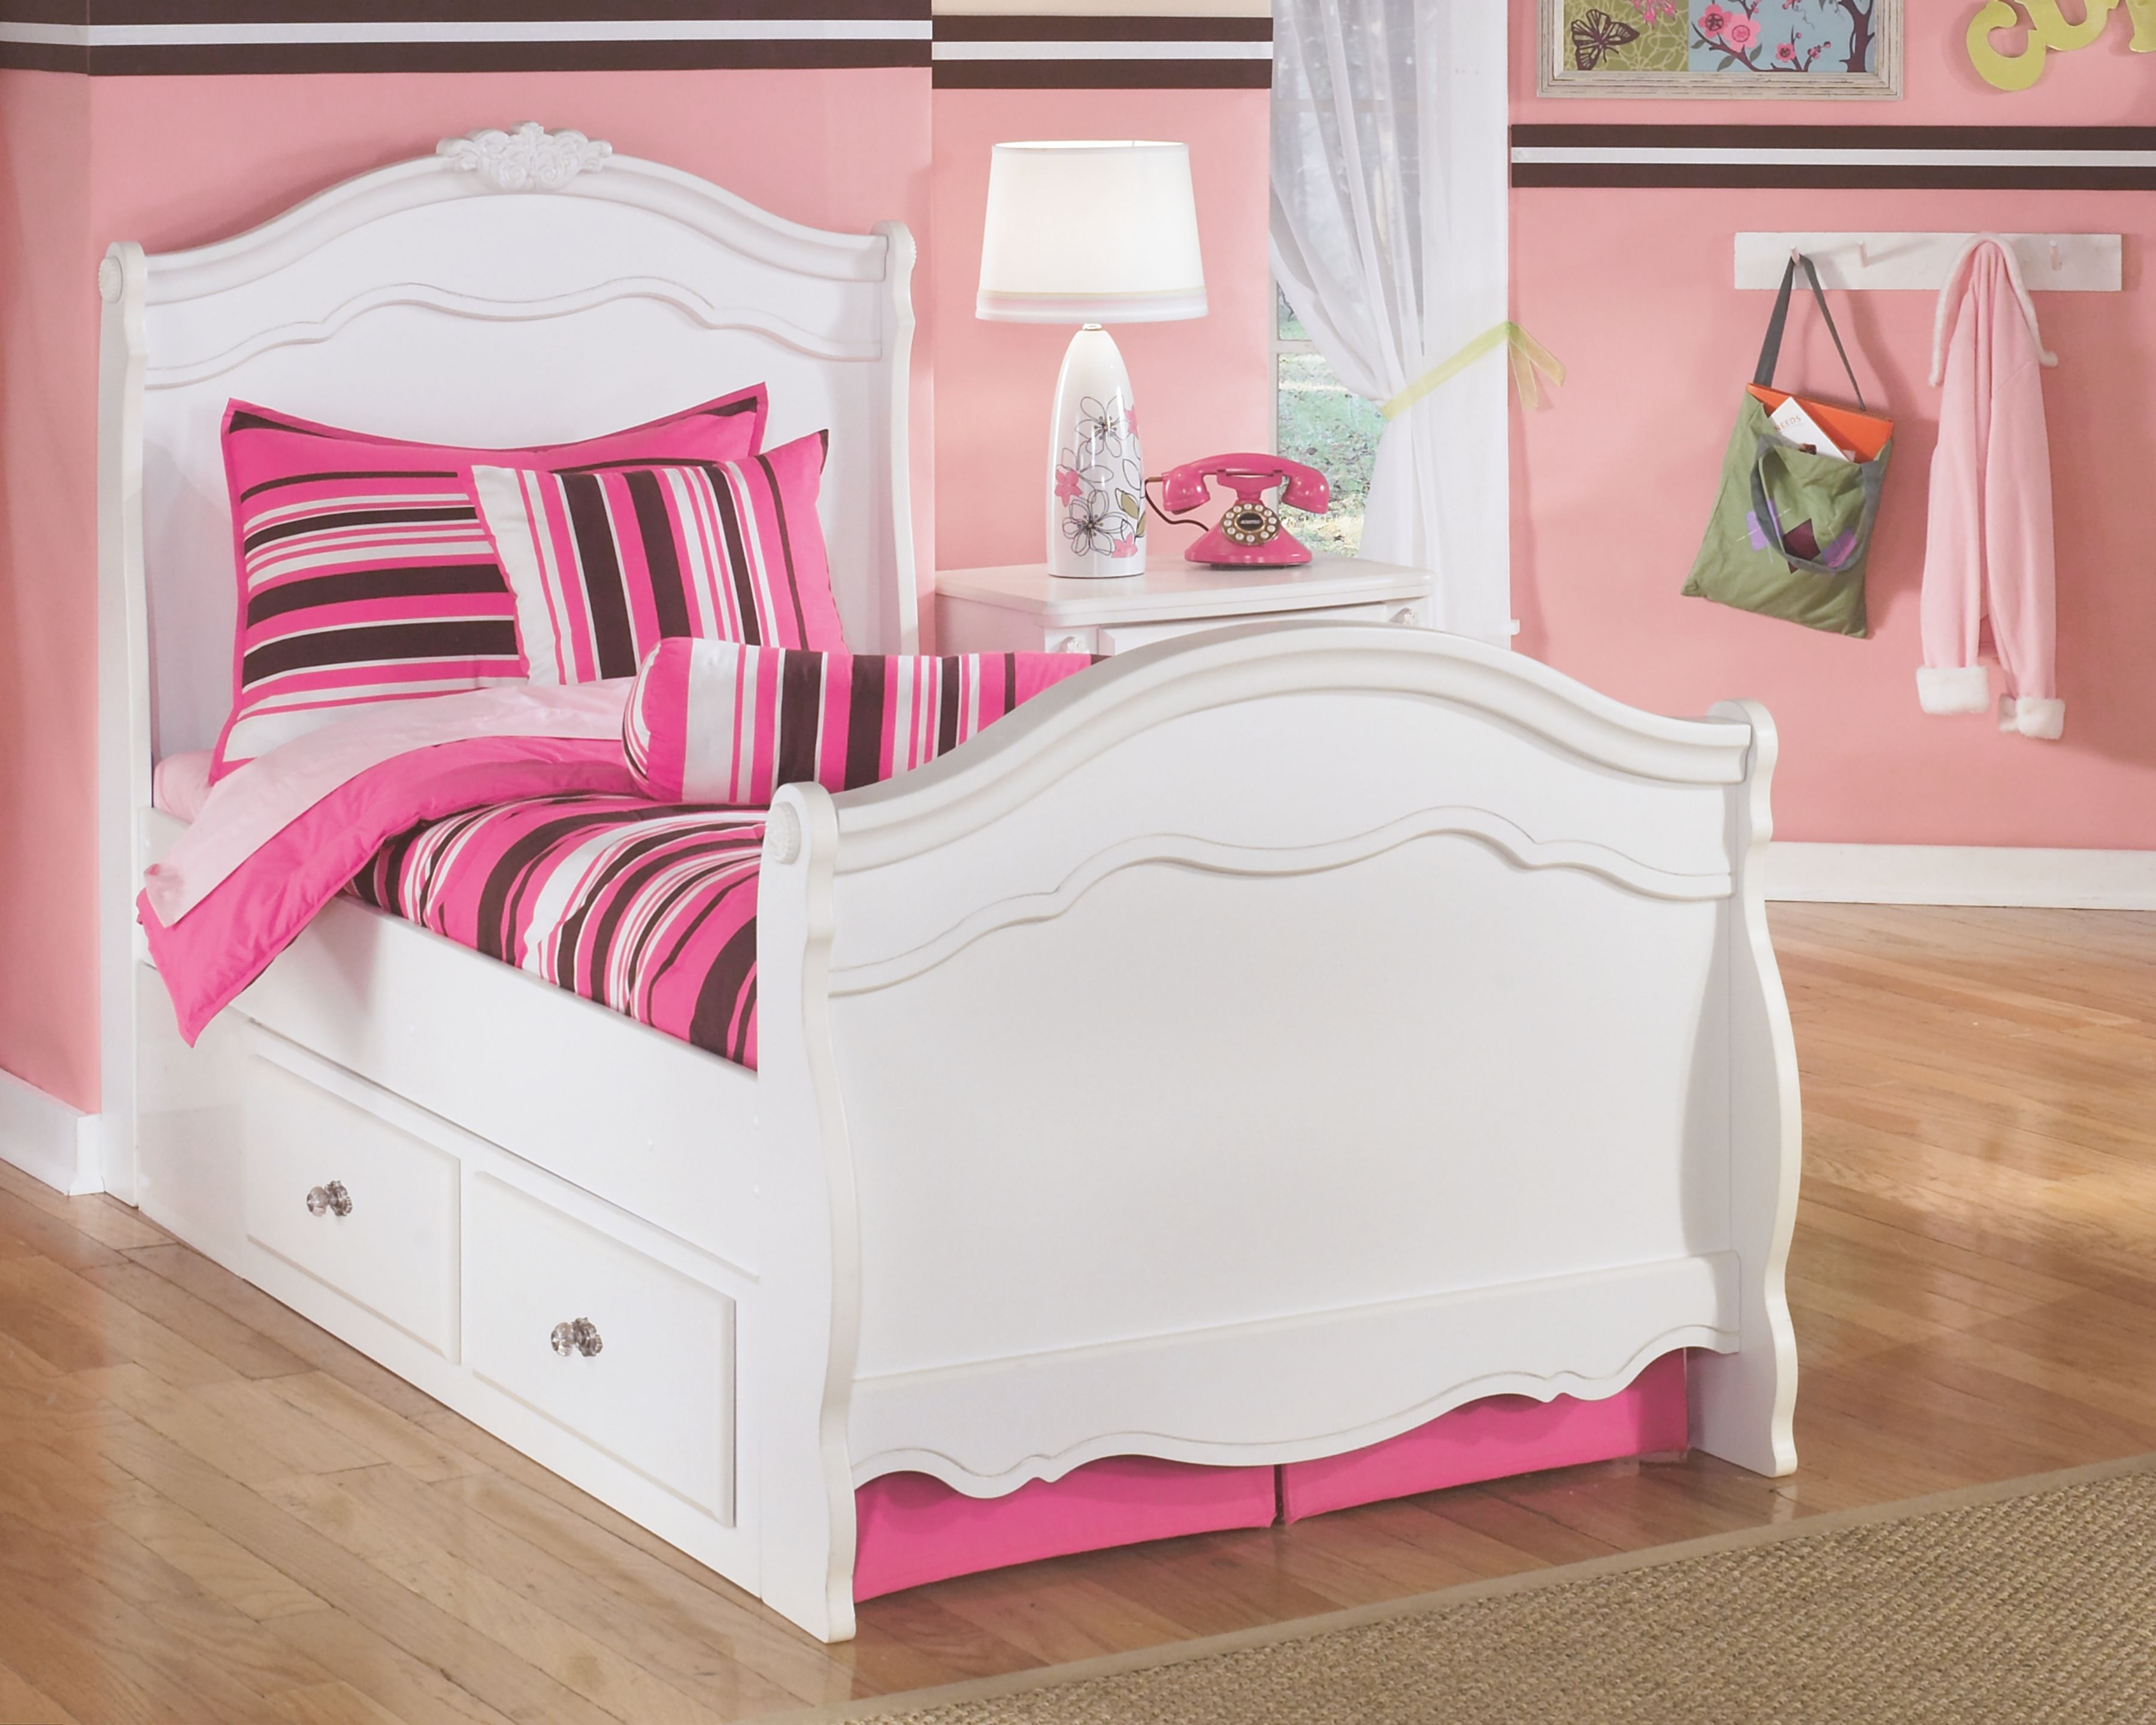 Exquisite Twin Sleigh Bed with Storage, White Products